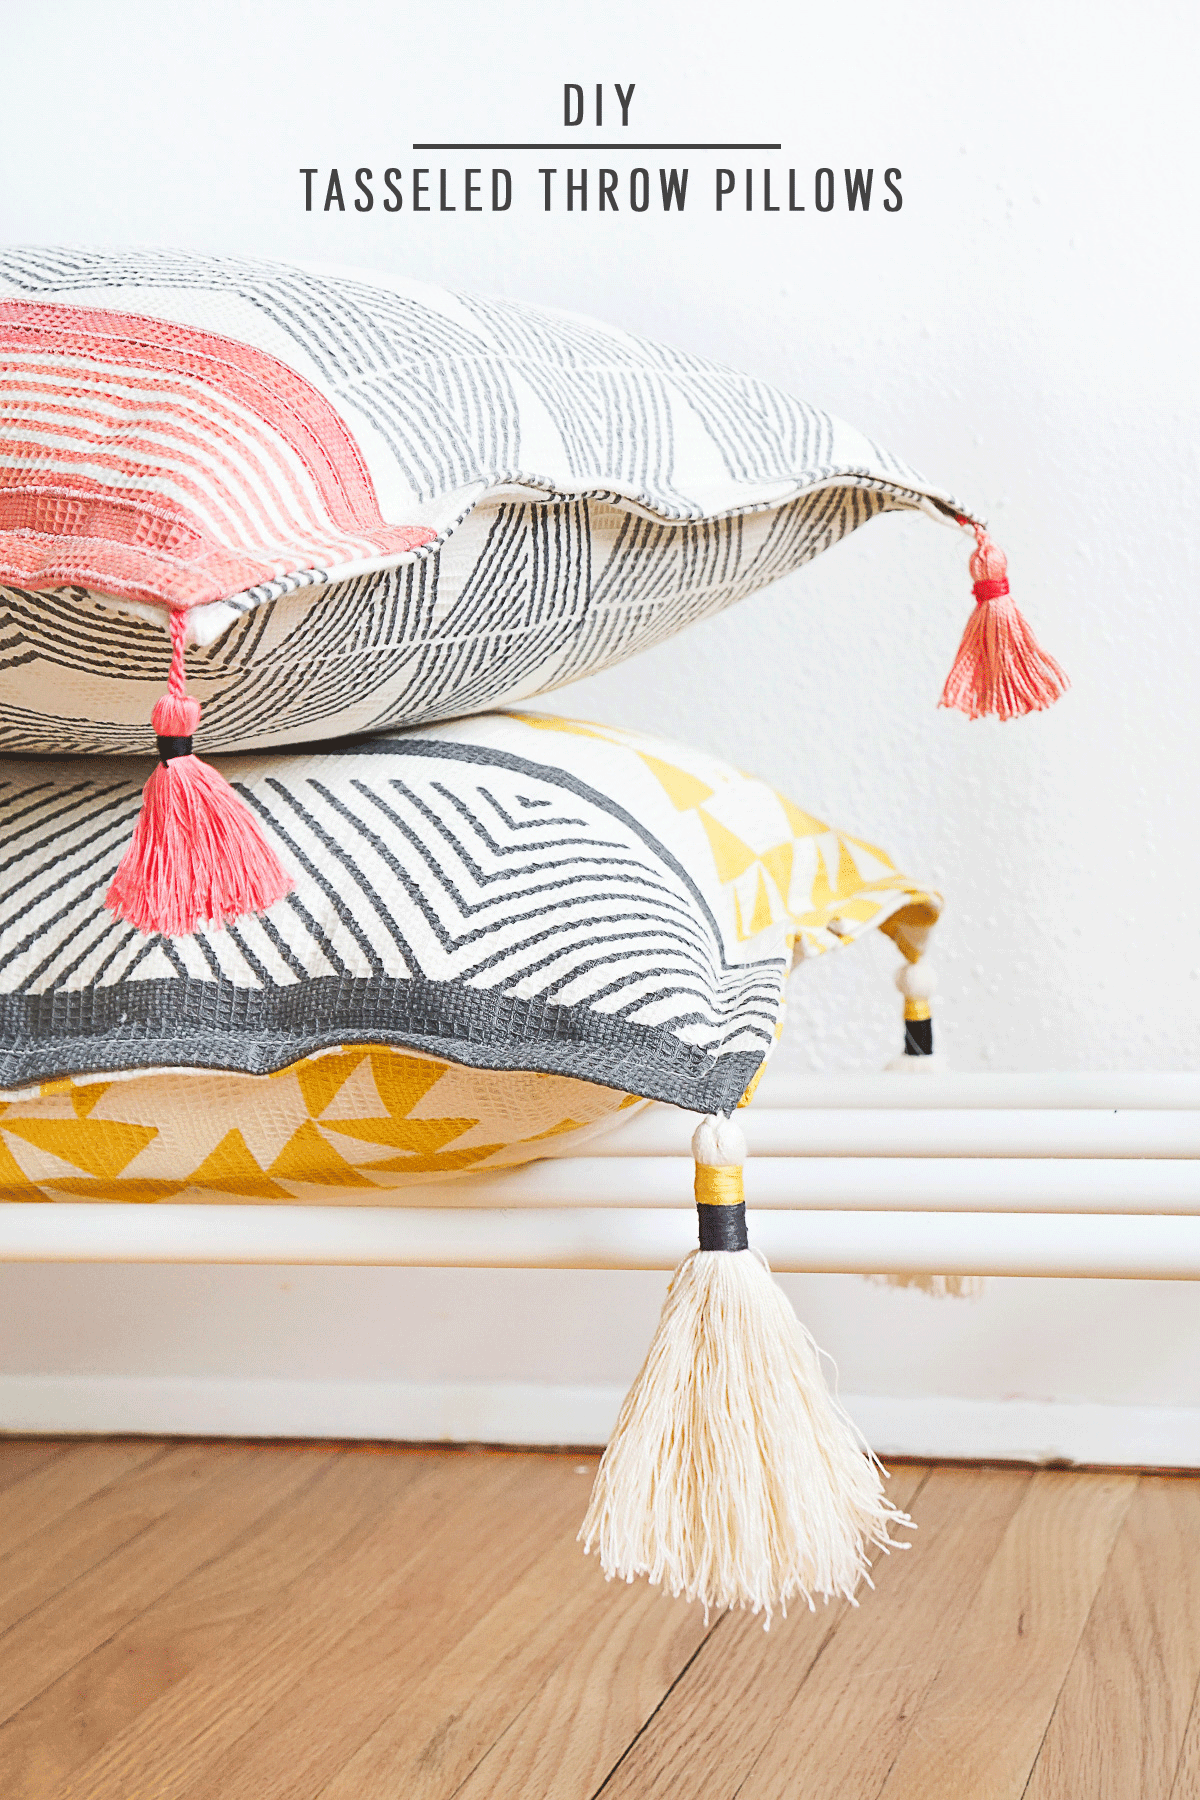 DIY Tasseled Throw Pillows by Ashley Rose of Sugar & Cloth, a top lifestyle blog in Houston, Texas